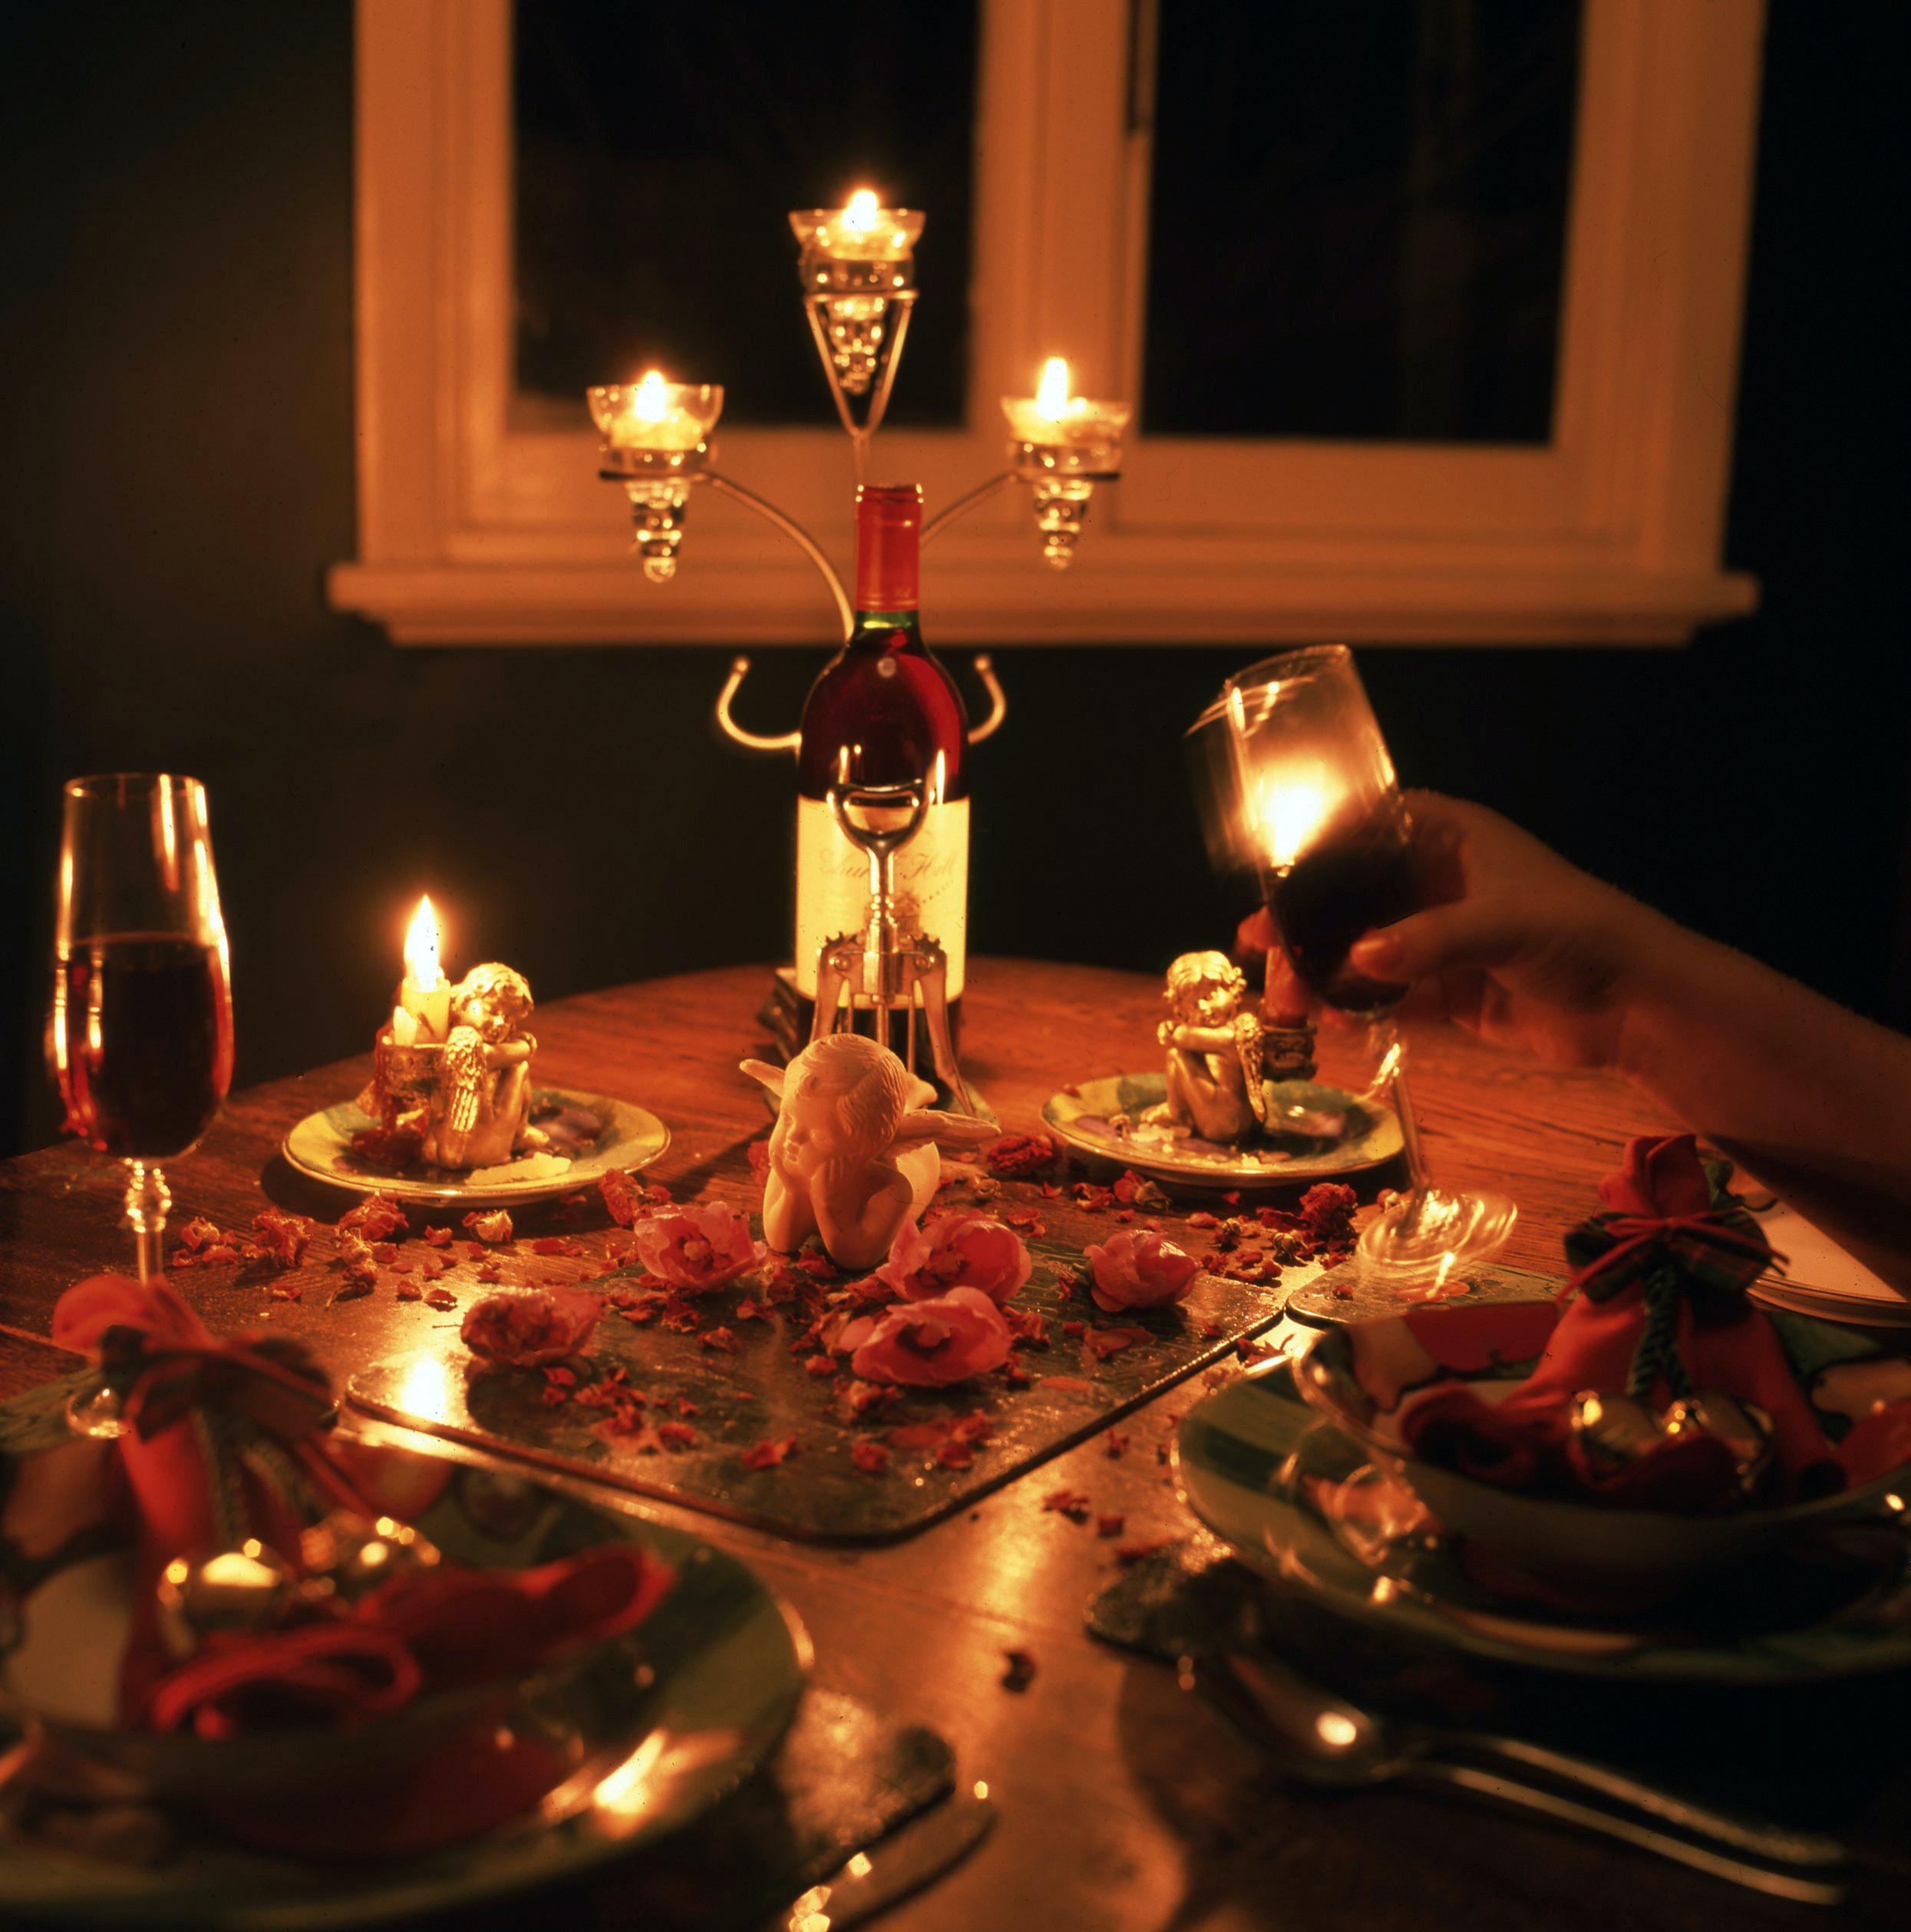 Free Stock Photo Of Candlelight, Dinner Table, Glass Of Wine